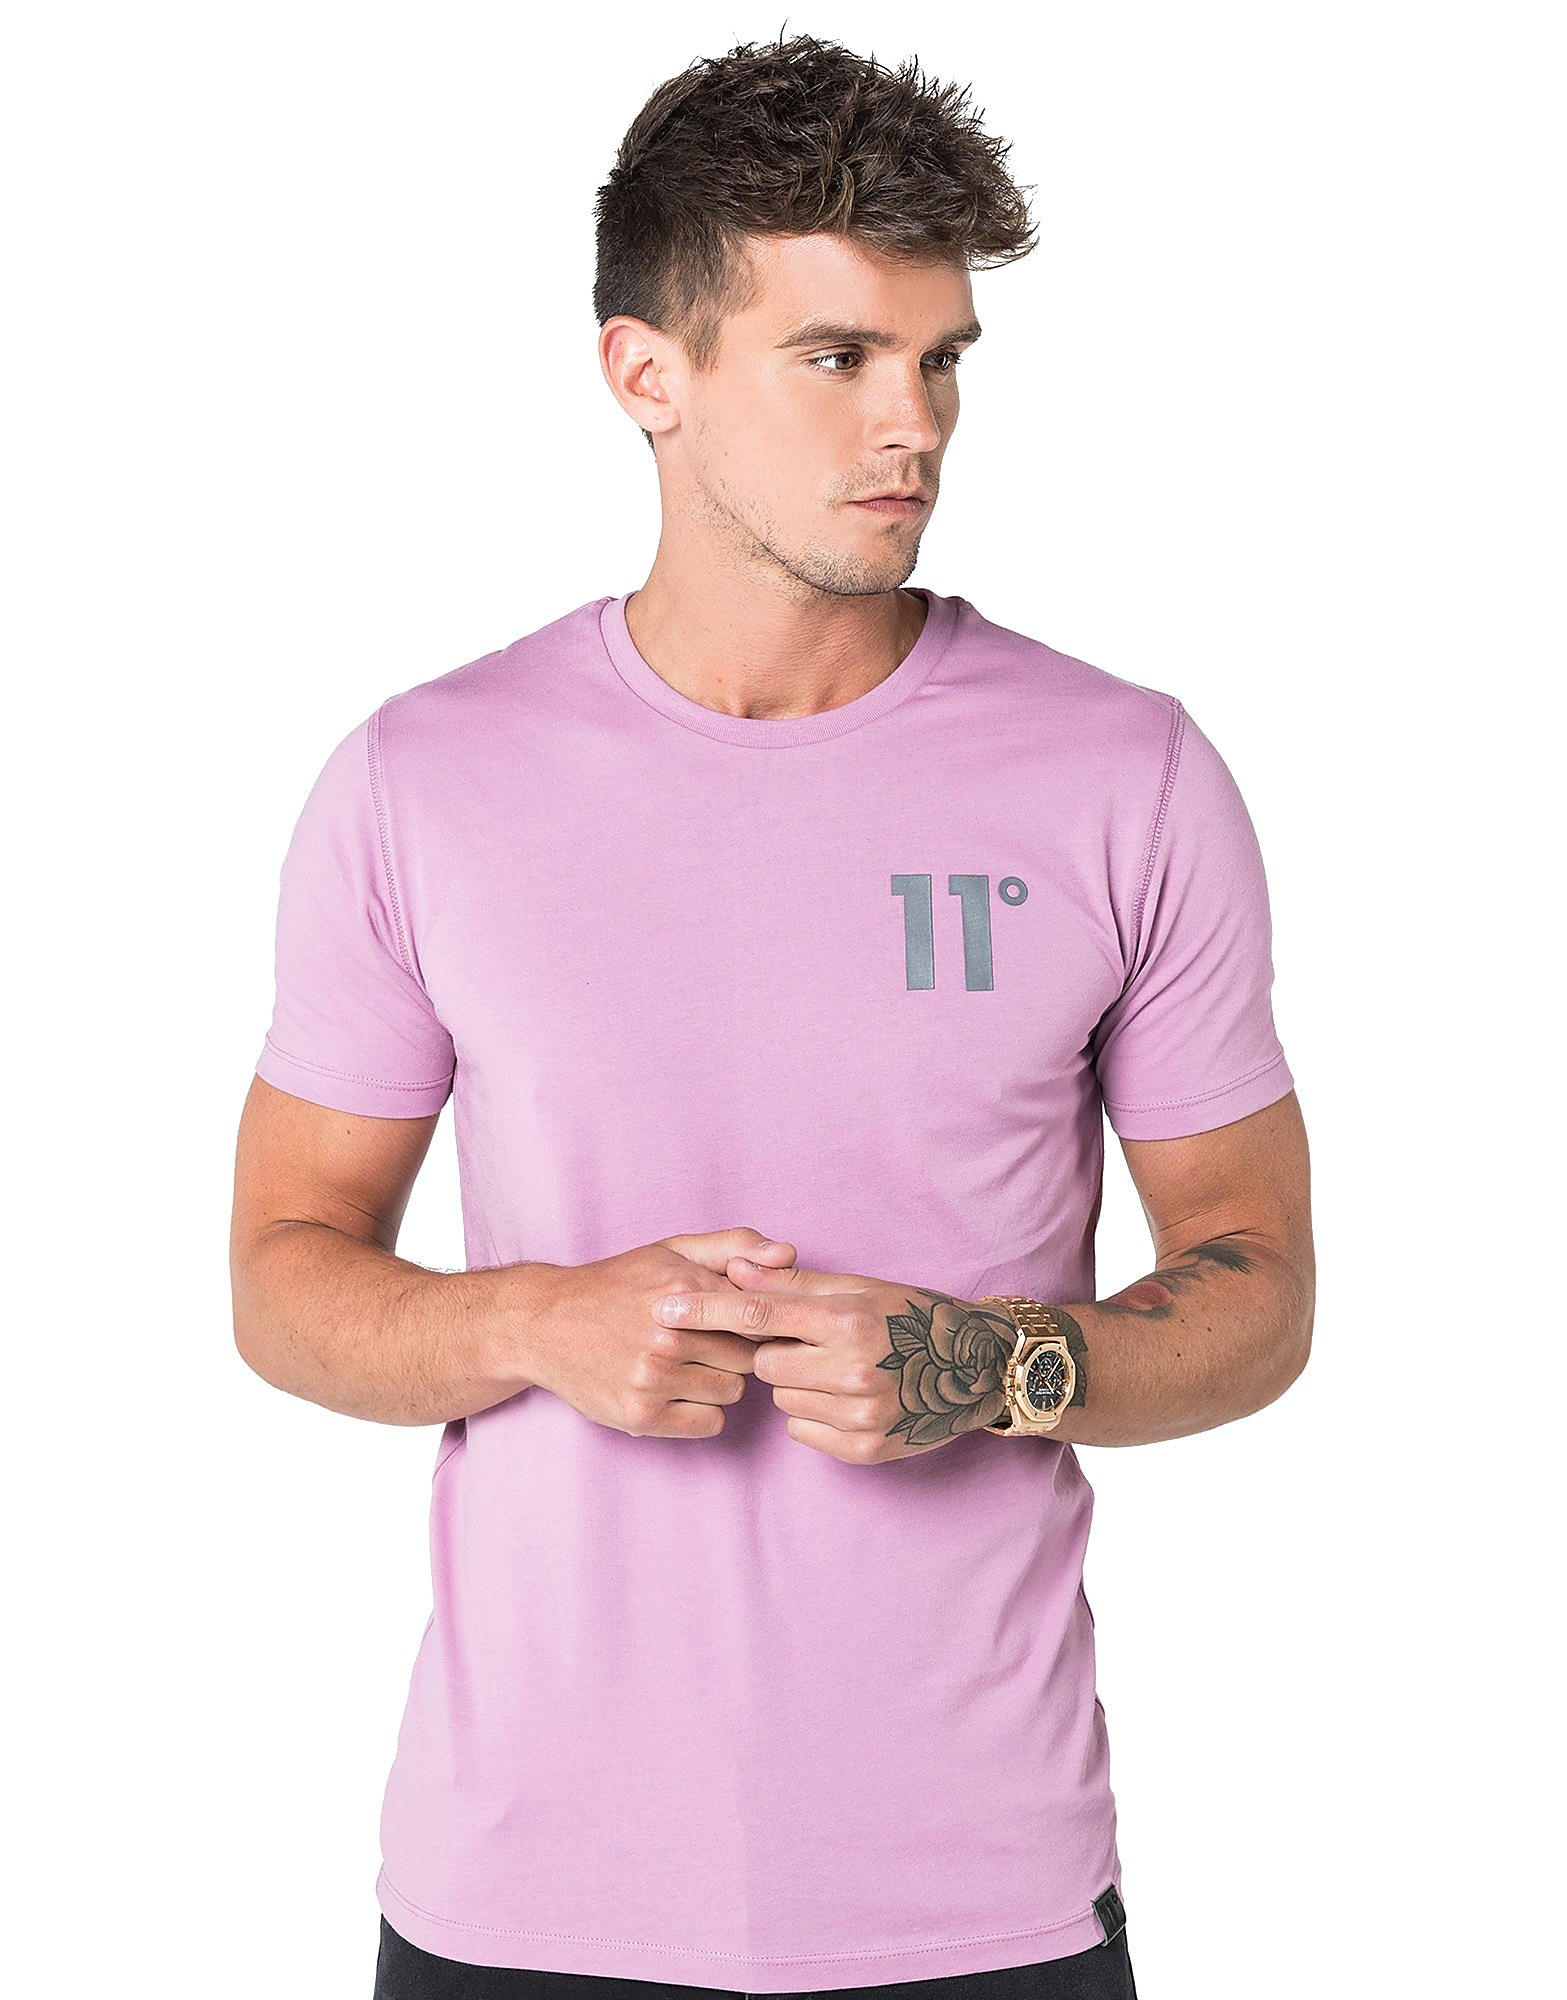 Image de 11 Degrees Core T-Shirt Homme - Orchid, Orchid